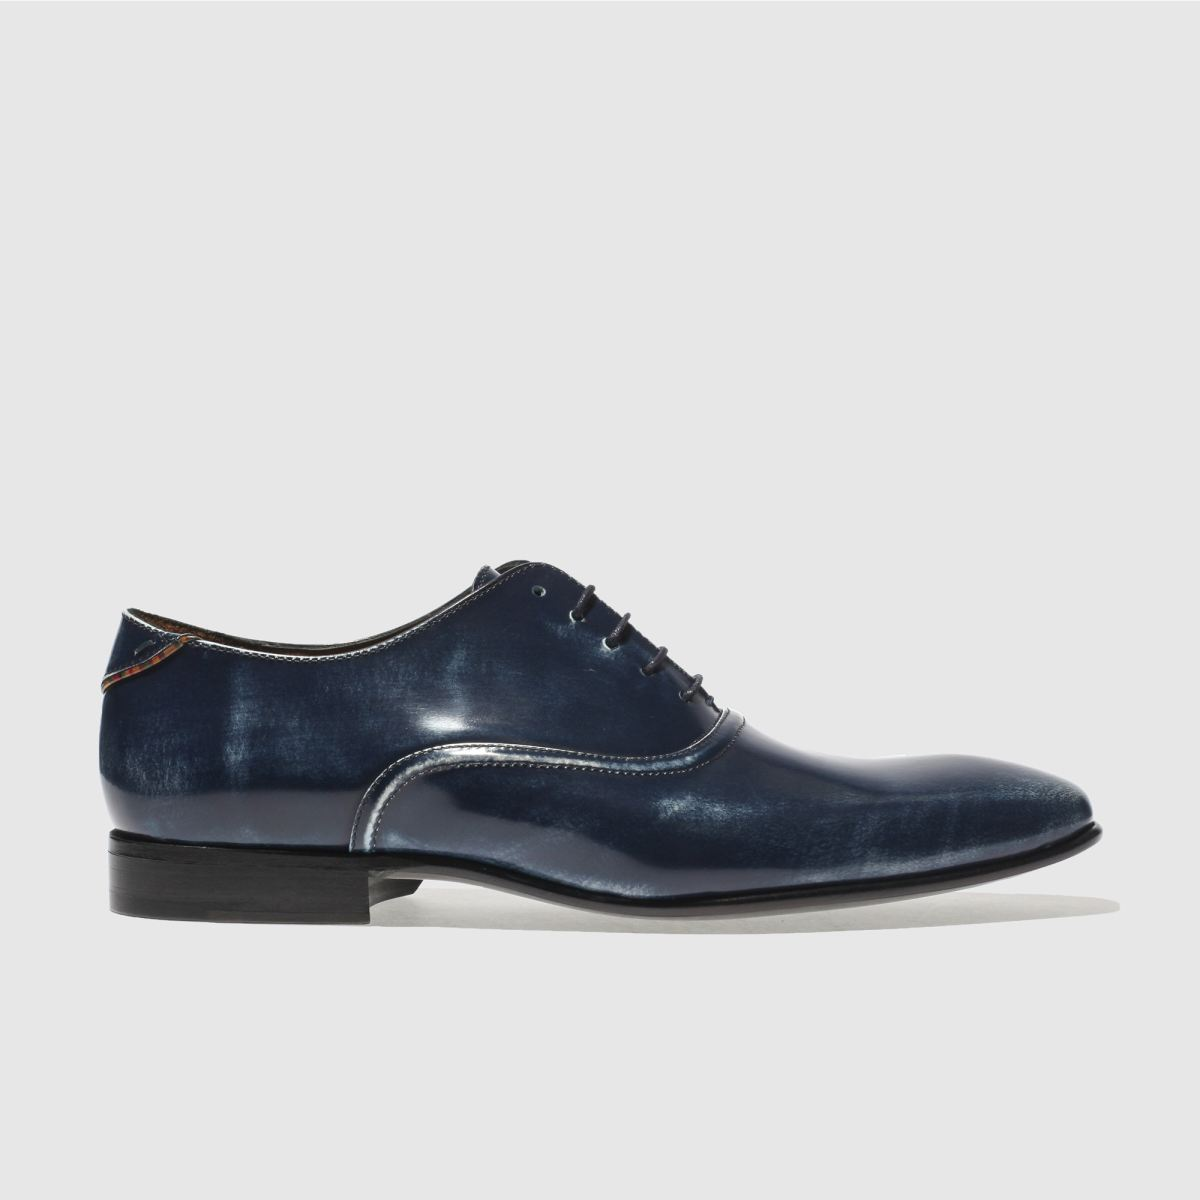 paul smith shoe ps Paul Smith Shoe Ps Navy Starling Shoes